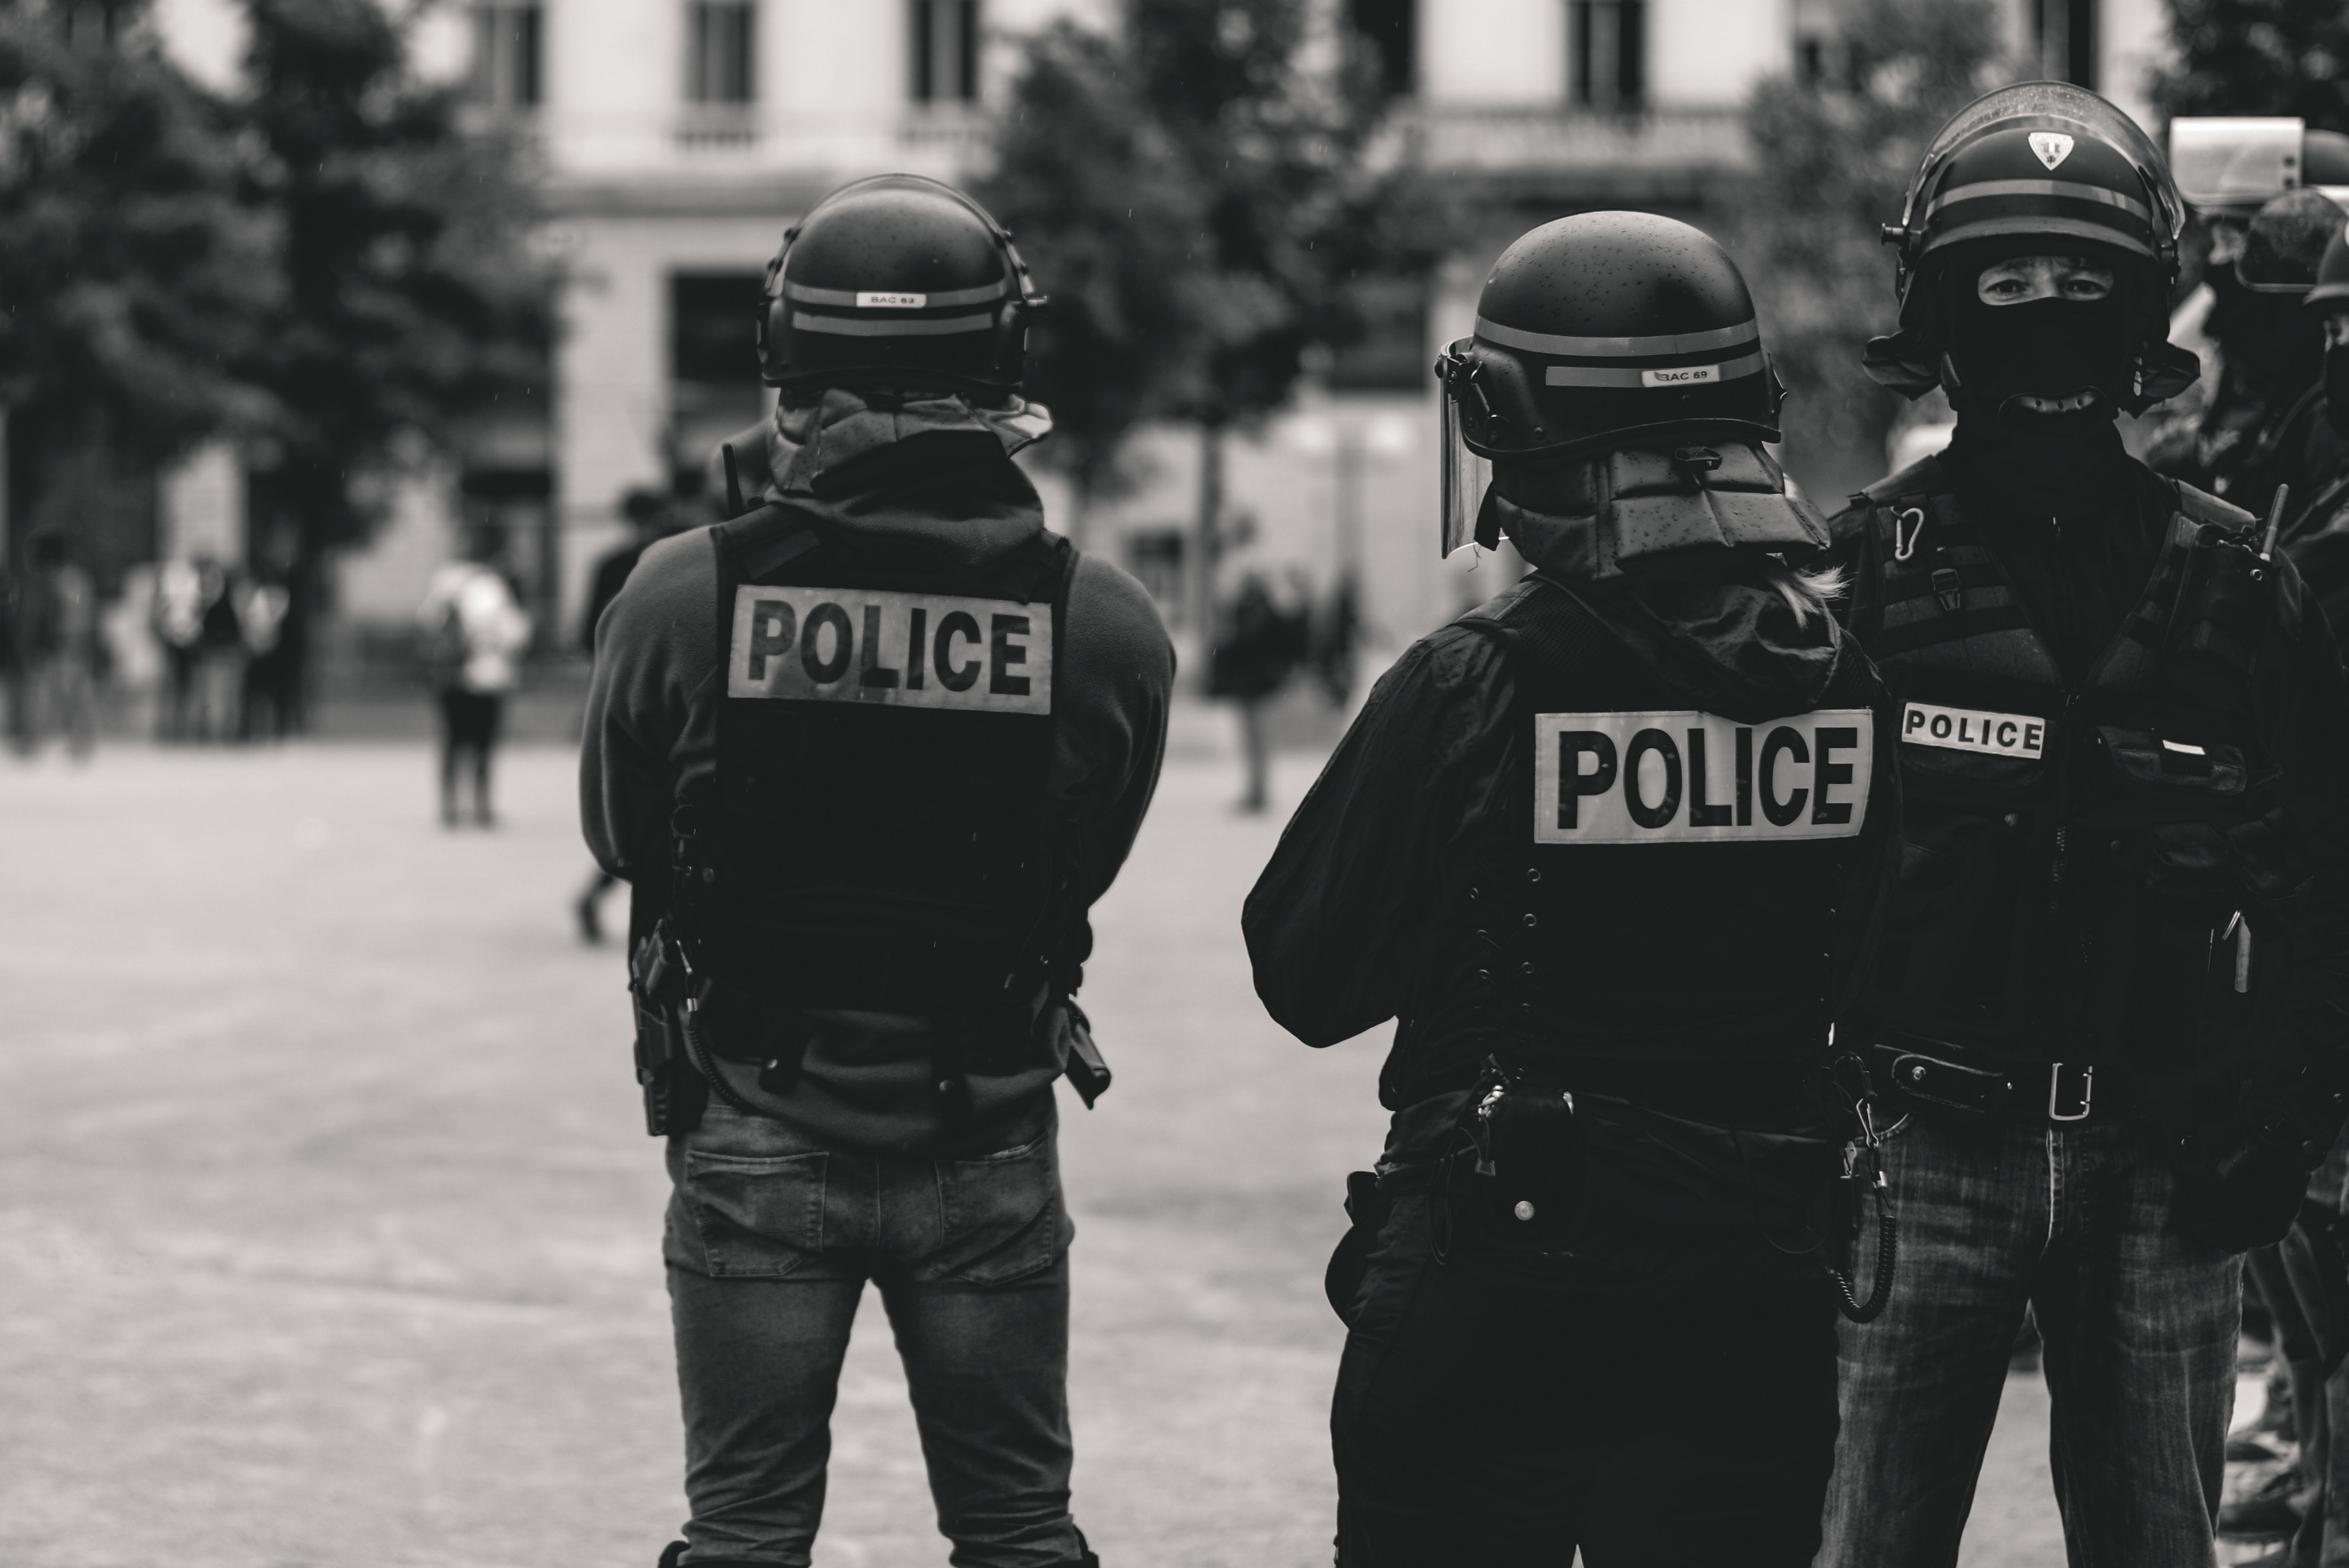 police team standing with equipment